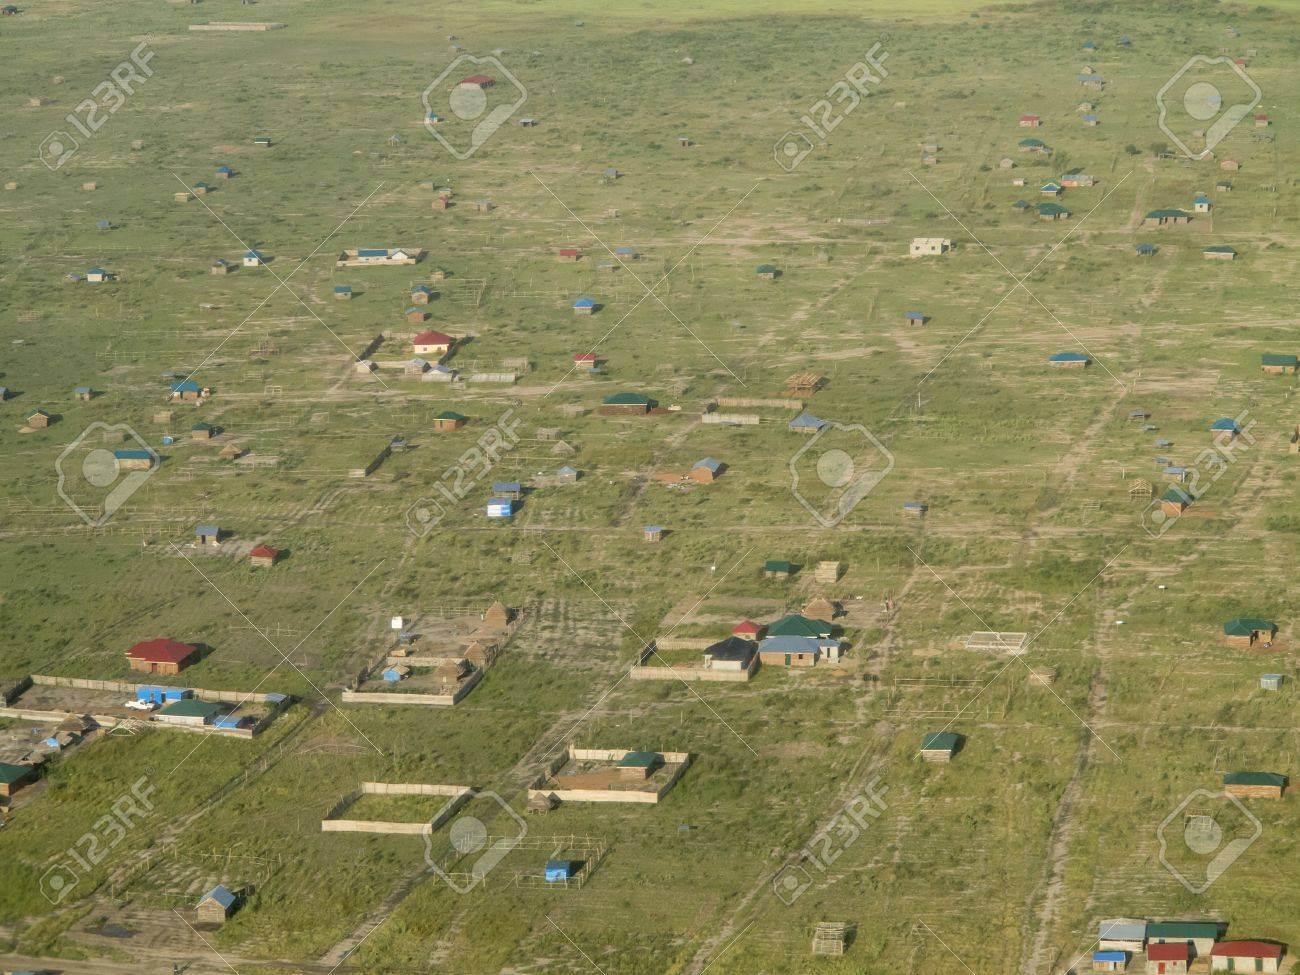 aerial view of villages on the outskirts of Juba, South Sudan